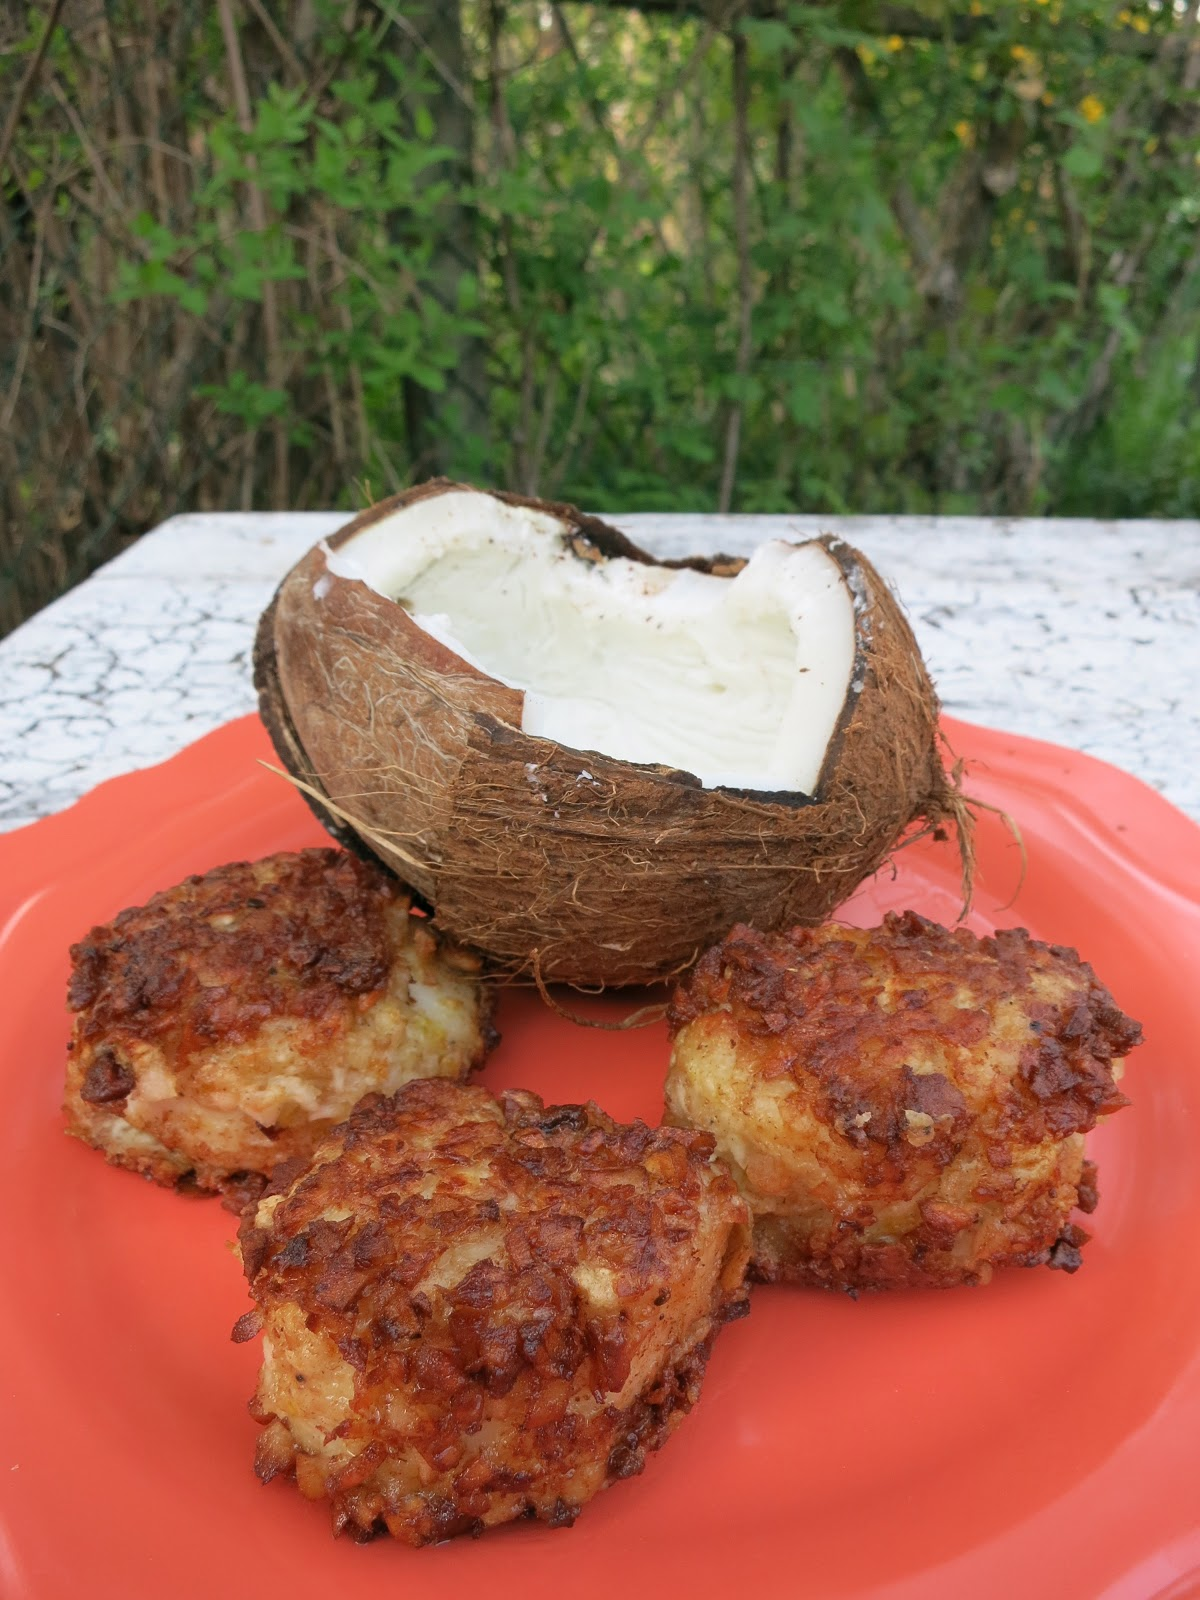 coconut how to open and eat